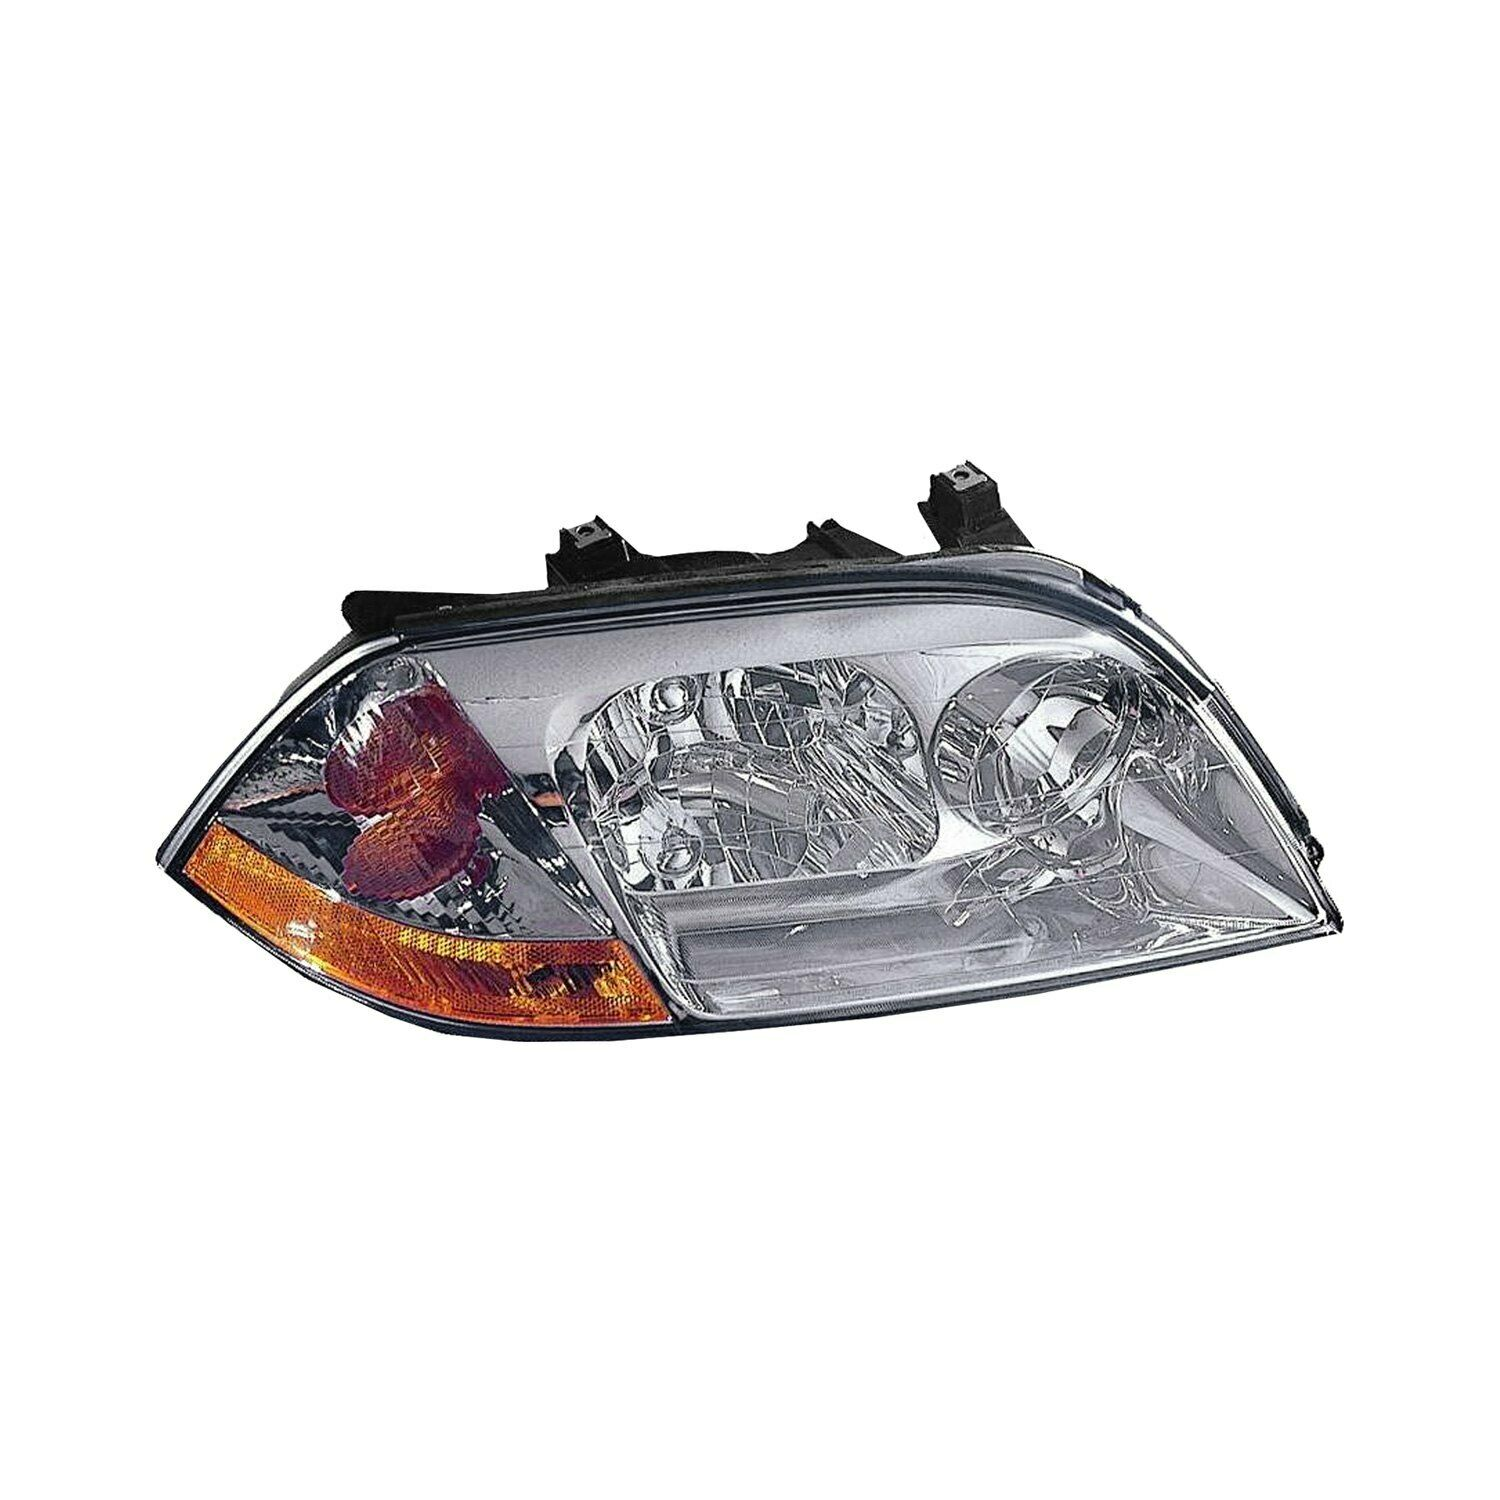 For Acura MDX 2001-2003 Replace AC2519103V Passenger Side